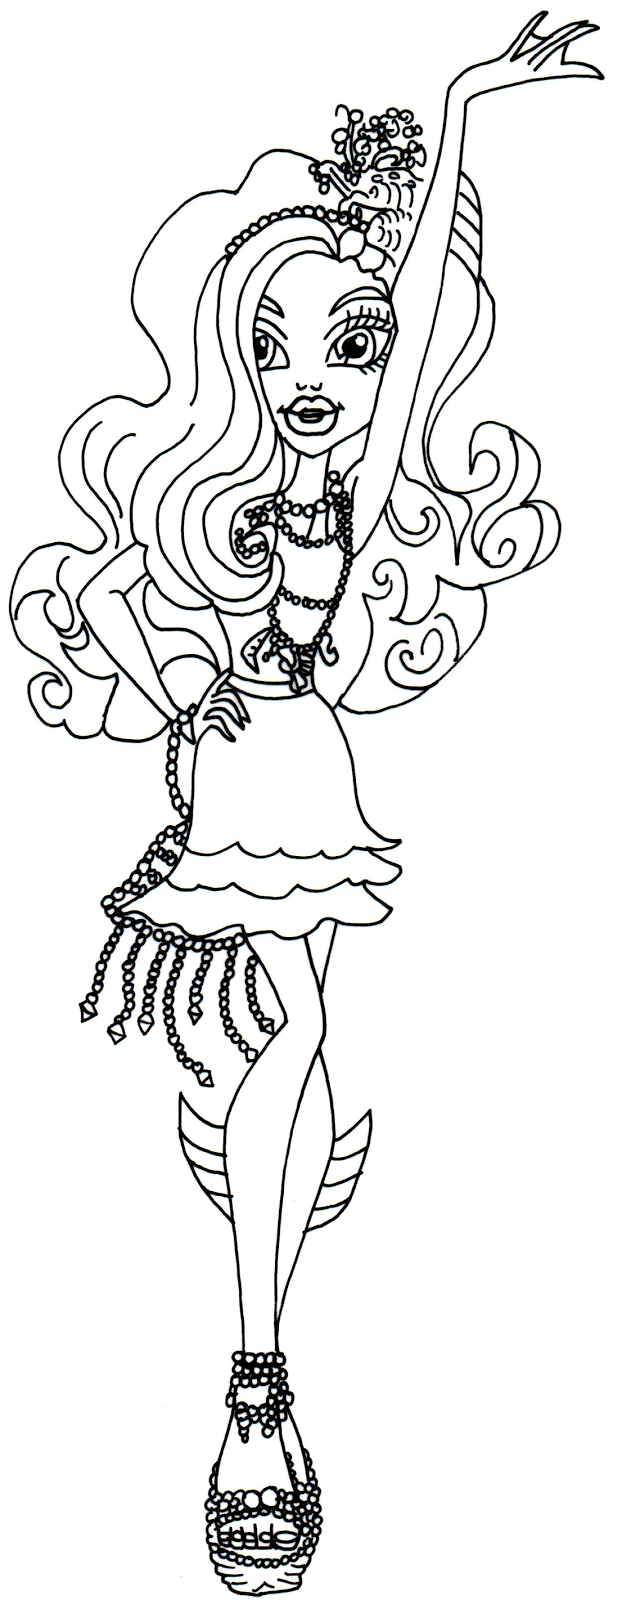 free printable monster high coloring pages  january 2014